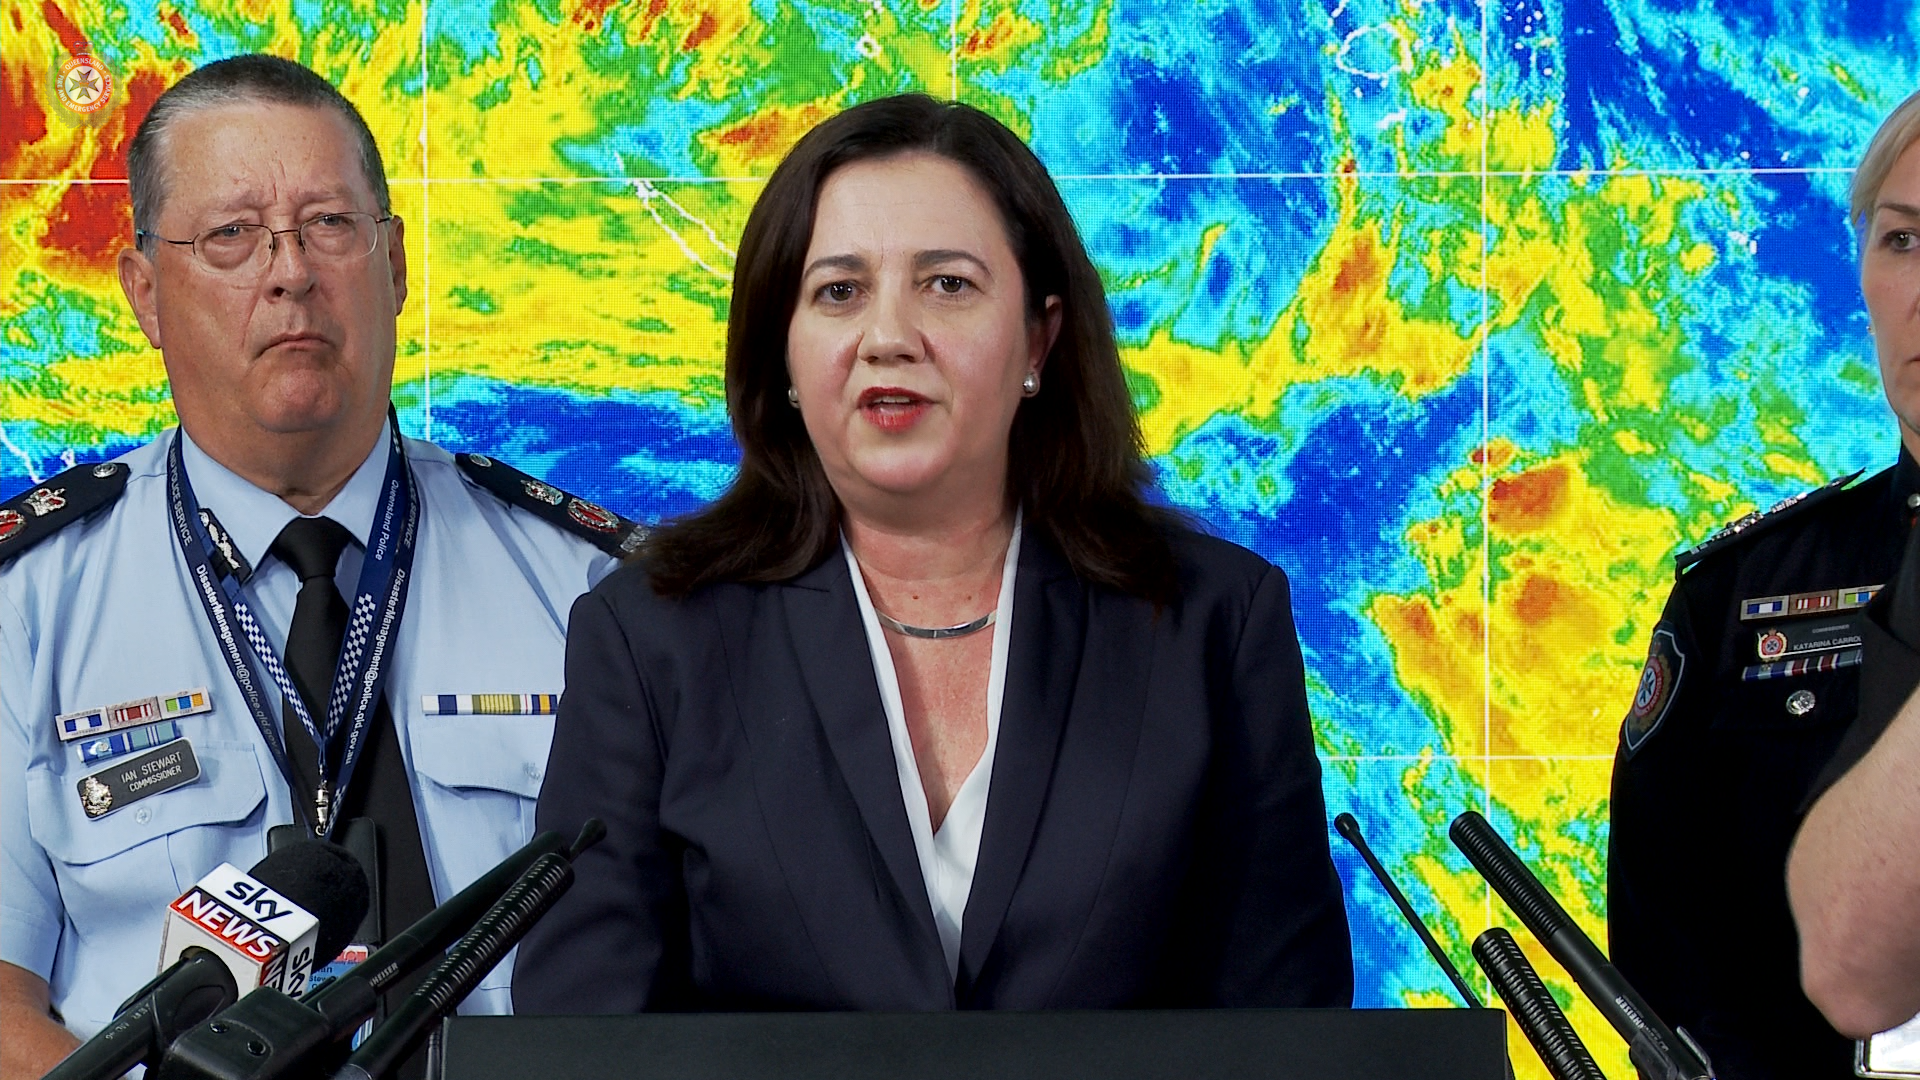 Queensland's Premier and Emergency Services continue to update residents of Queensland